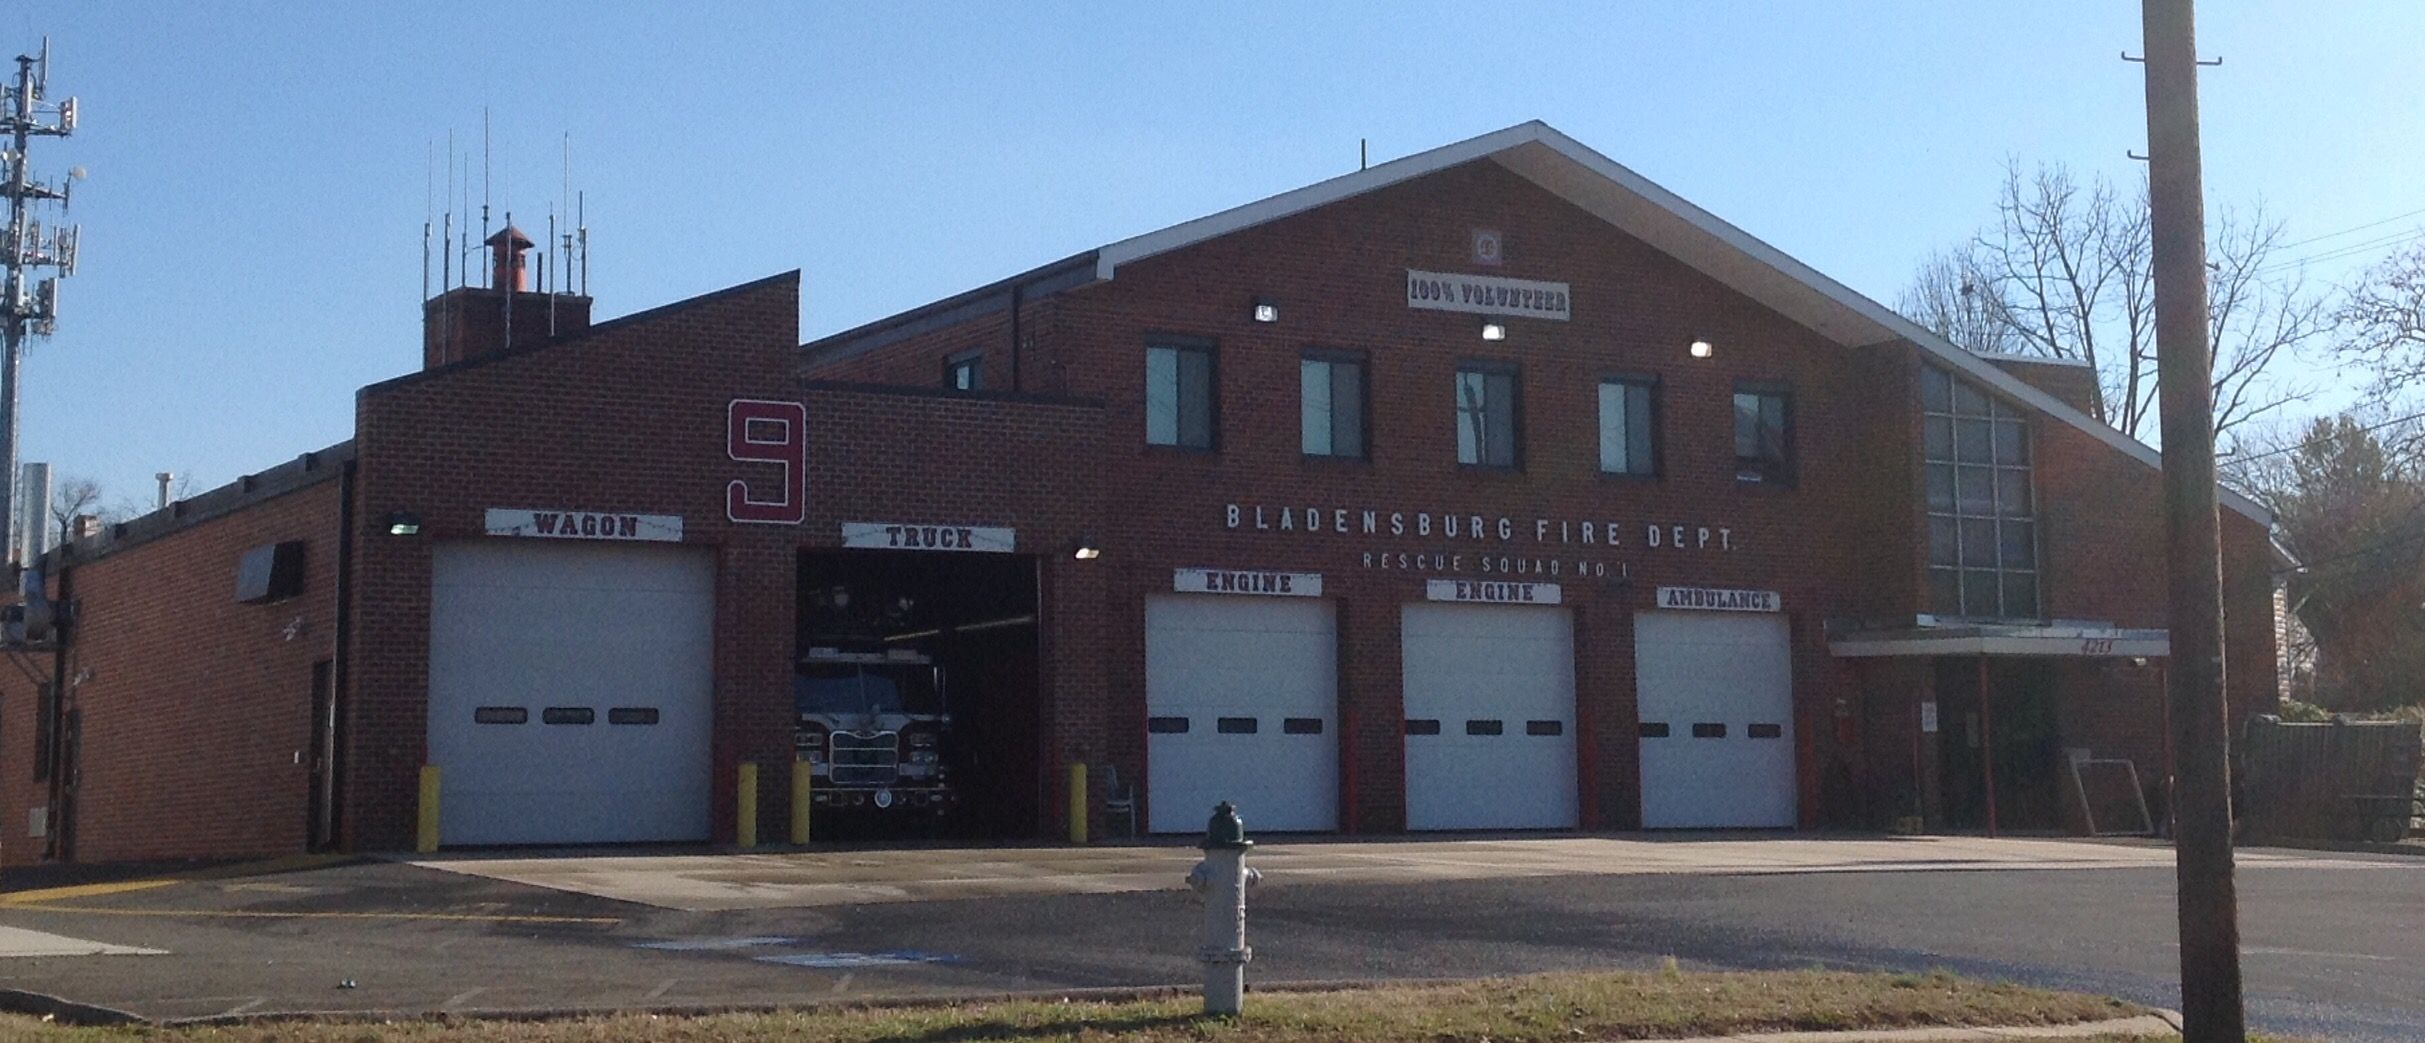 Prince George's County Station 9, Engine 809, Engine 809B, Engine 809C, Truck 809, Ambulance 809 and Ambulance 809B. Bladensburg, MD.